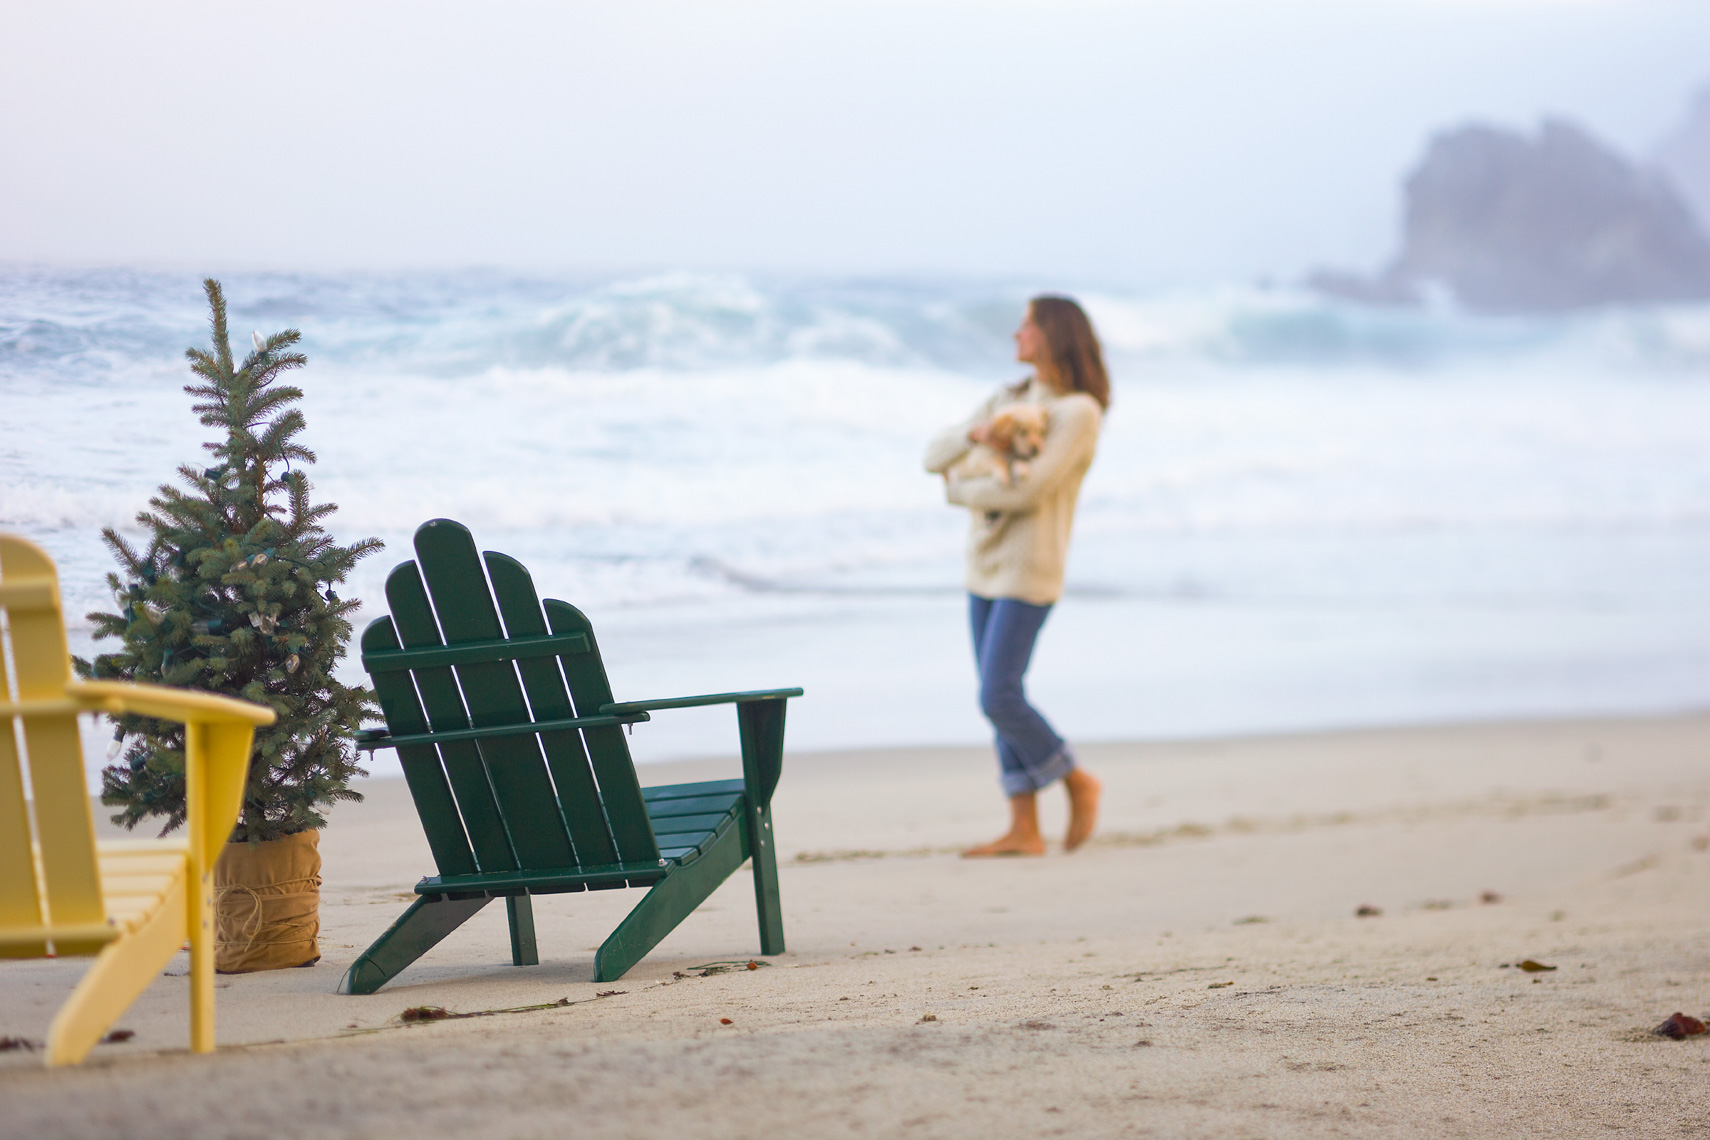 Woman with puppy at beach with adirondack chairs and holiday tree